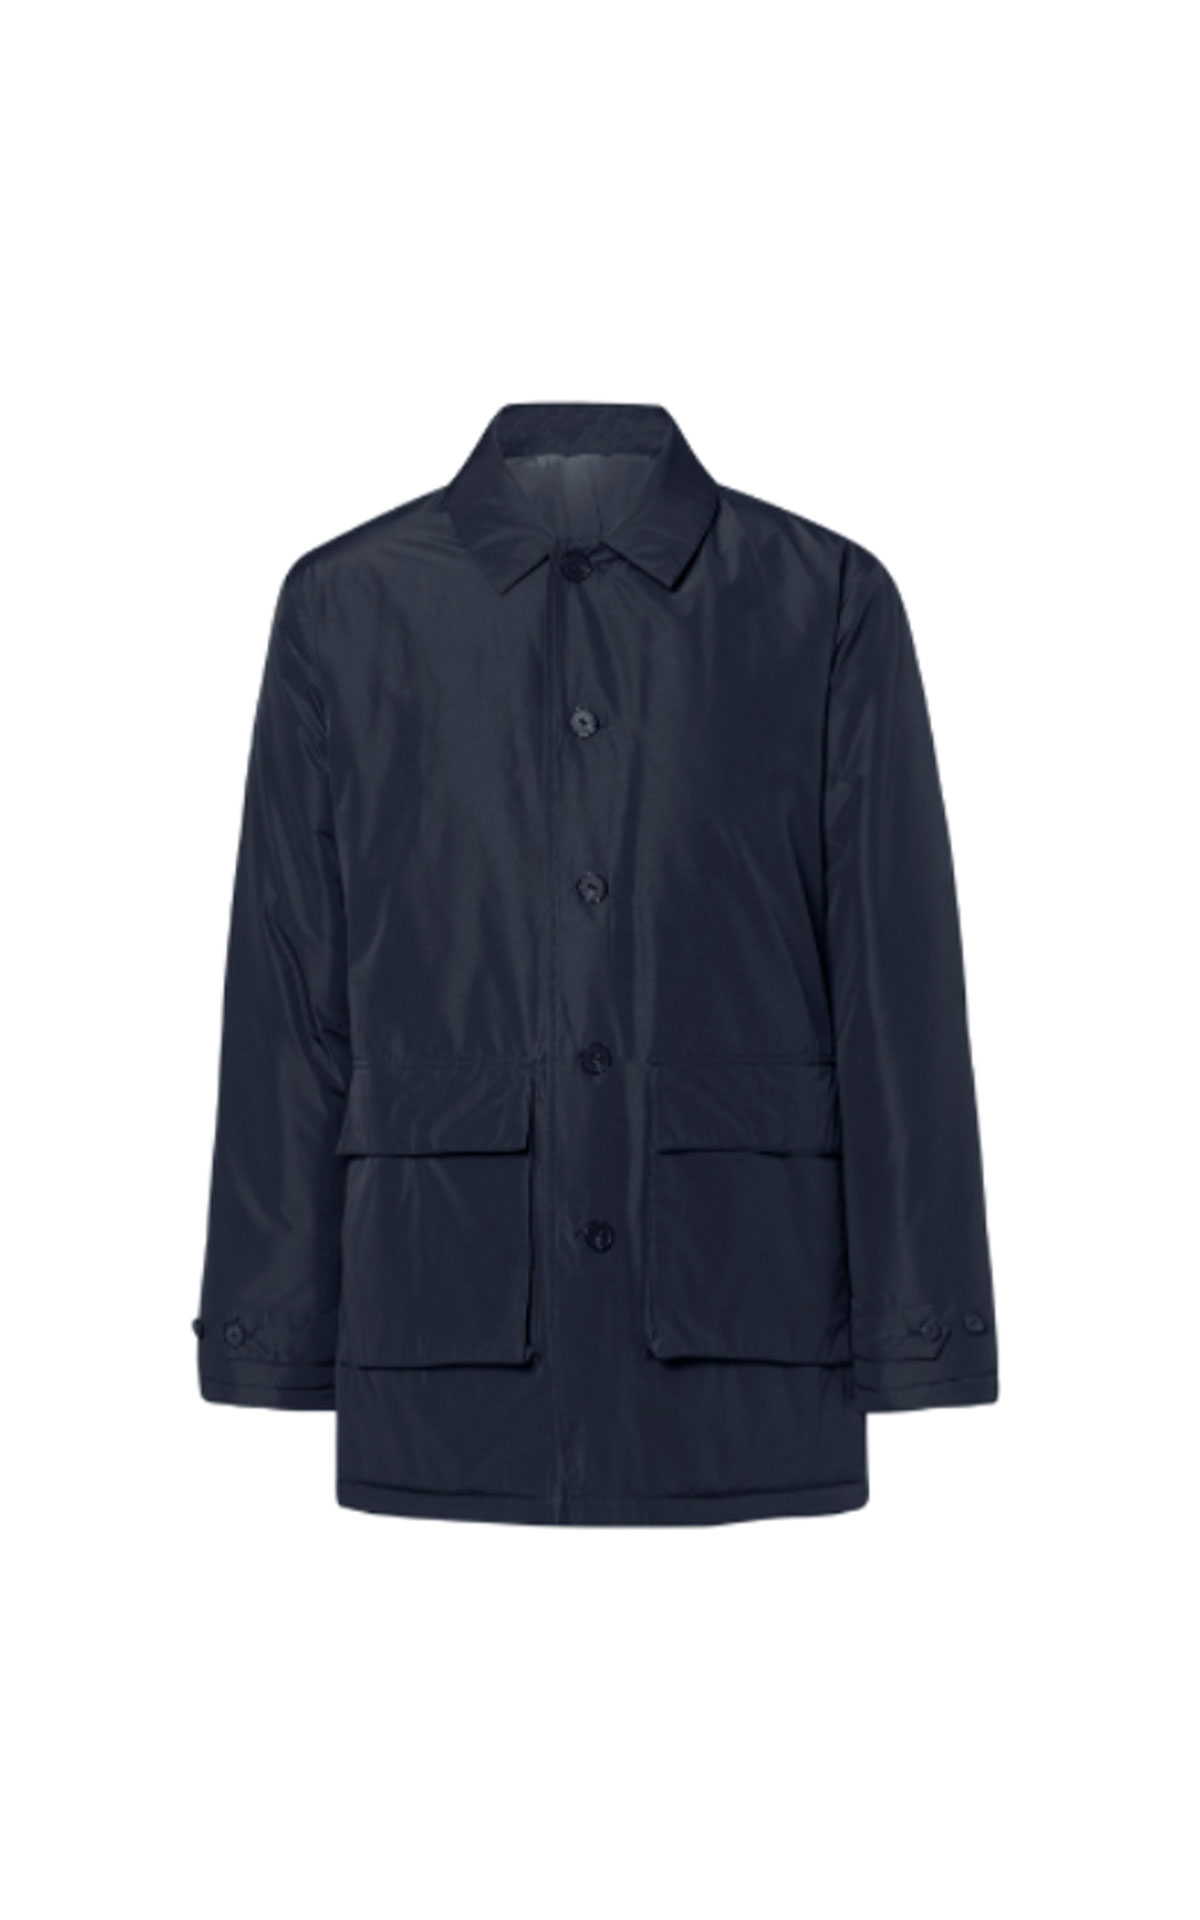 Hackett London Driver's coat from Bicester Village